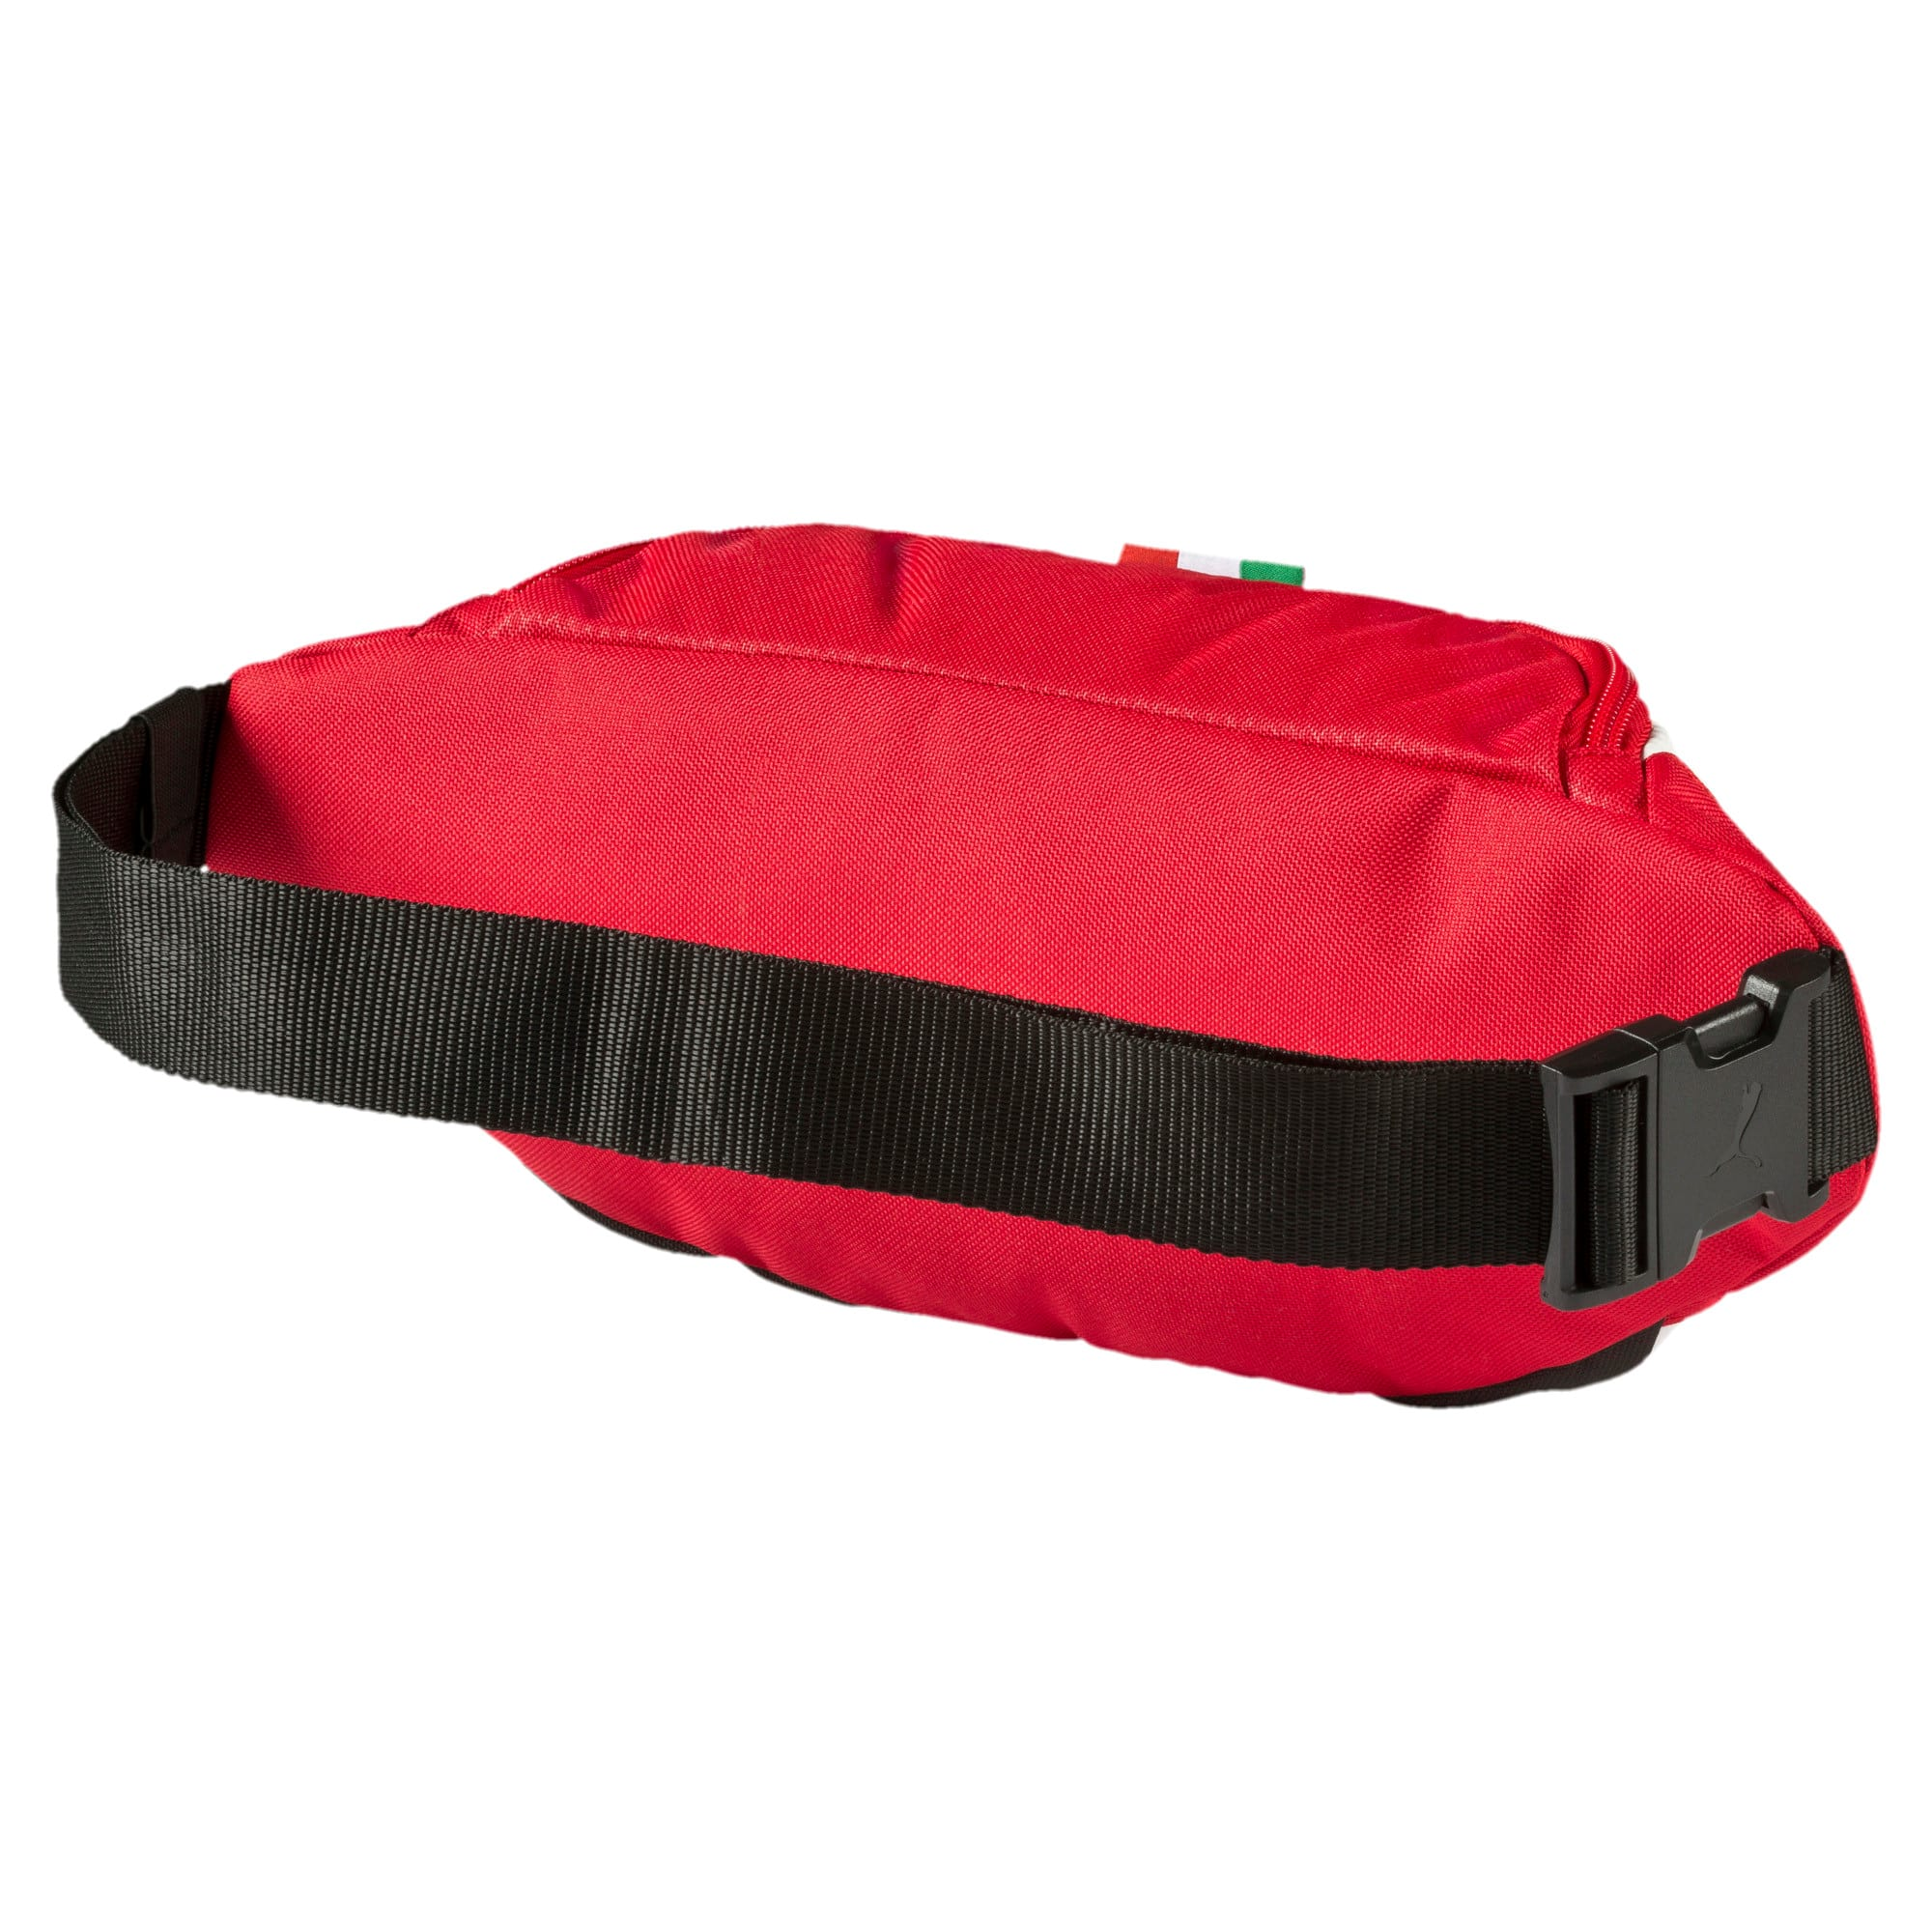 Thumbnail 2 of Ferrari Replica Waist Bag, rosso corsa-white-black, medium-IND